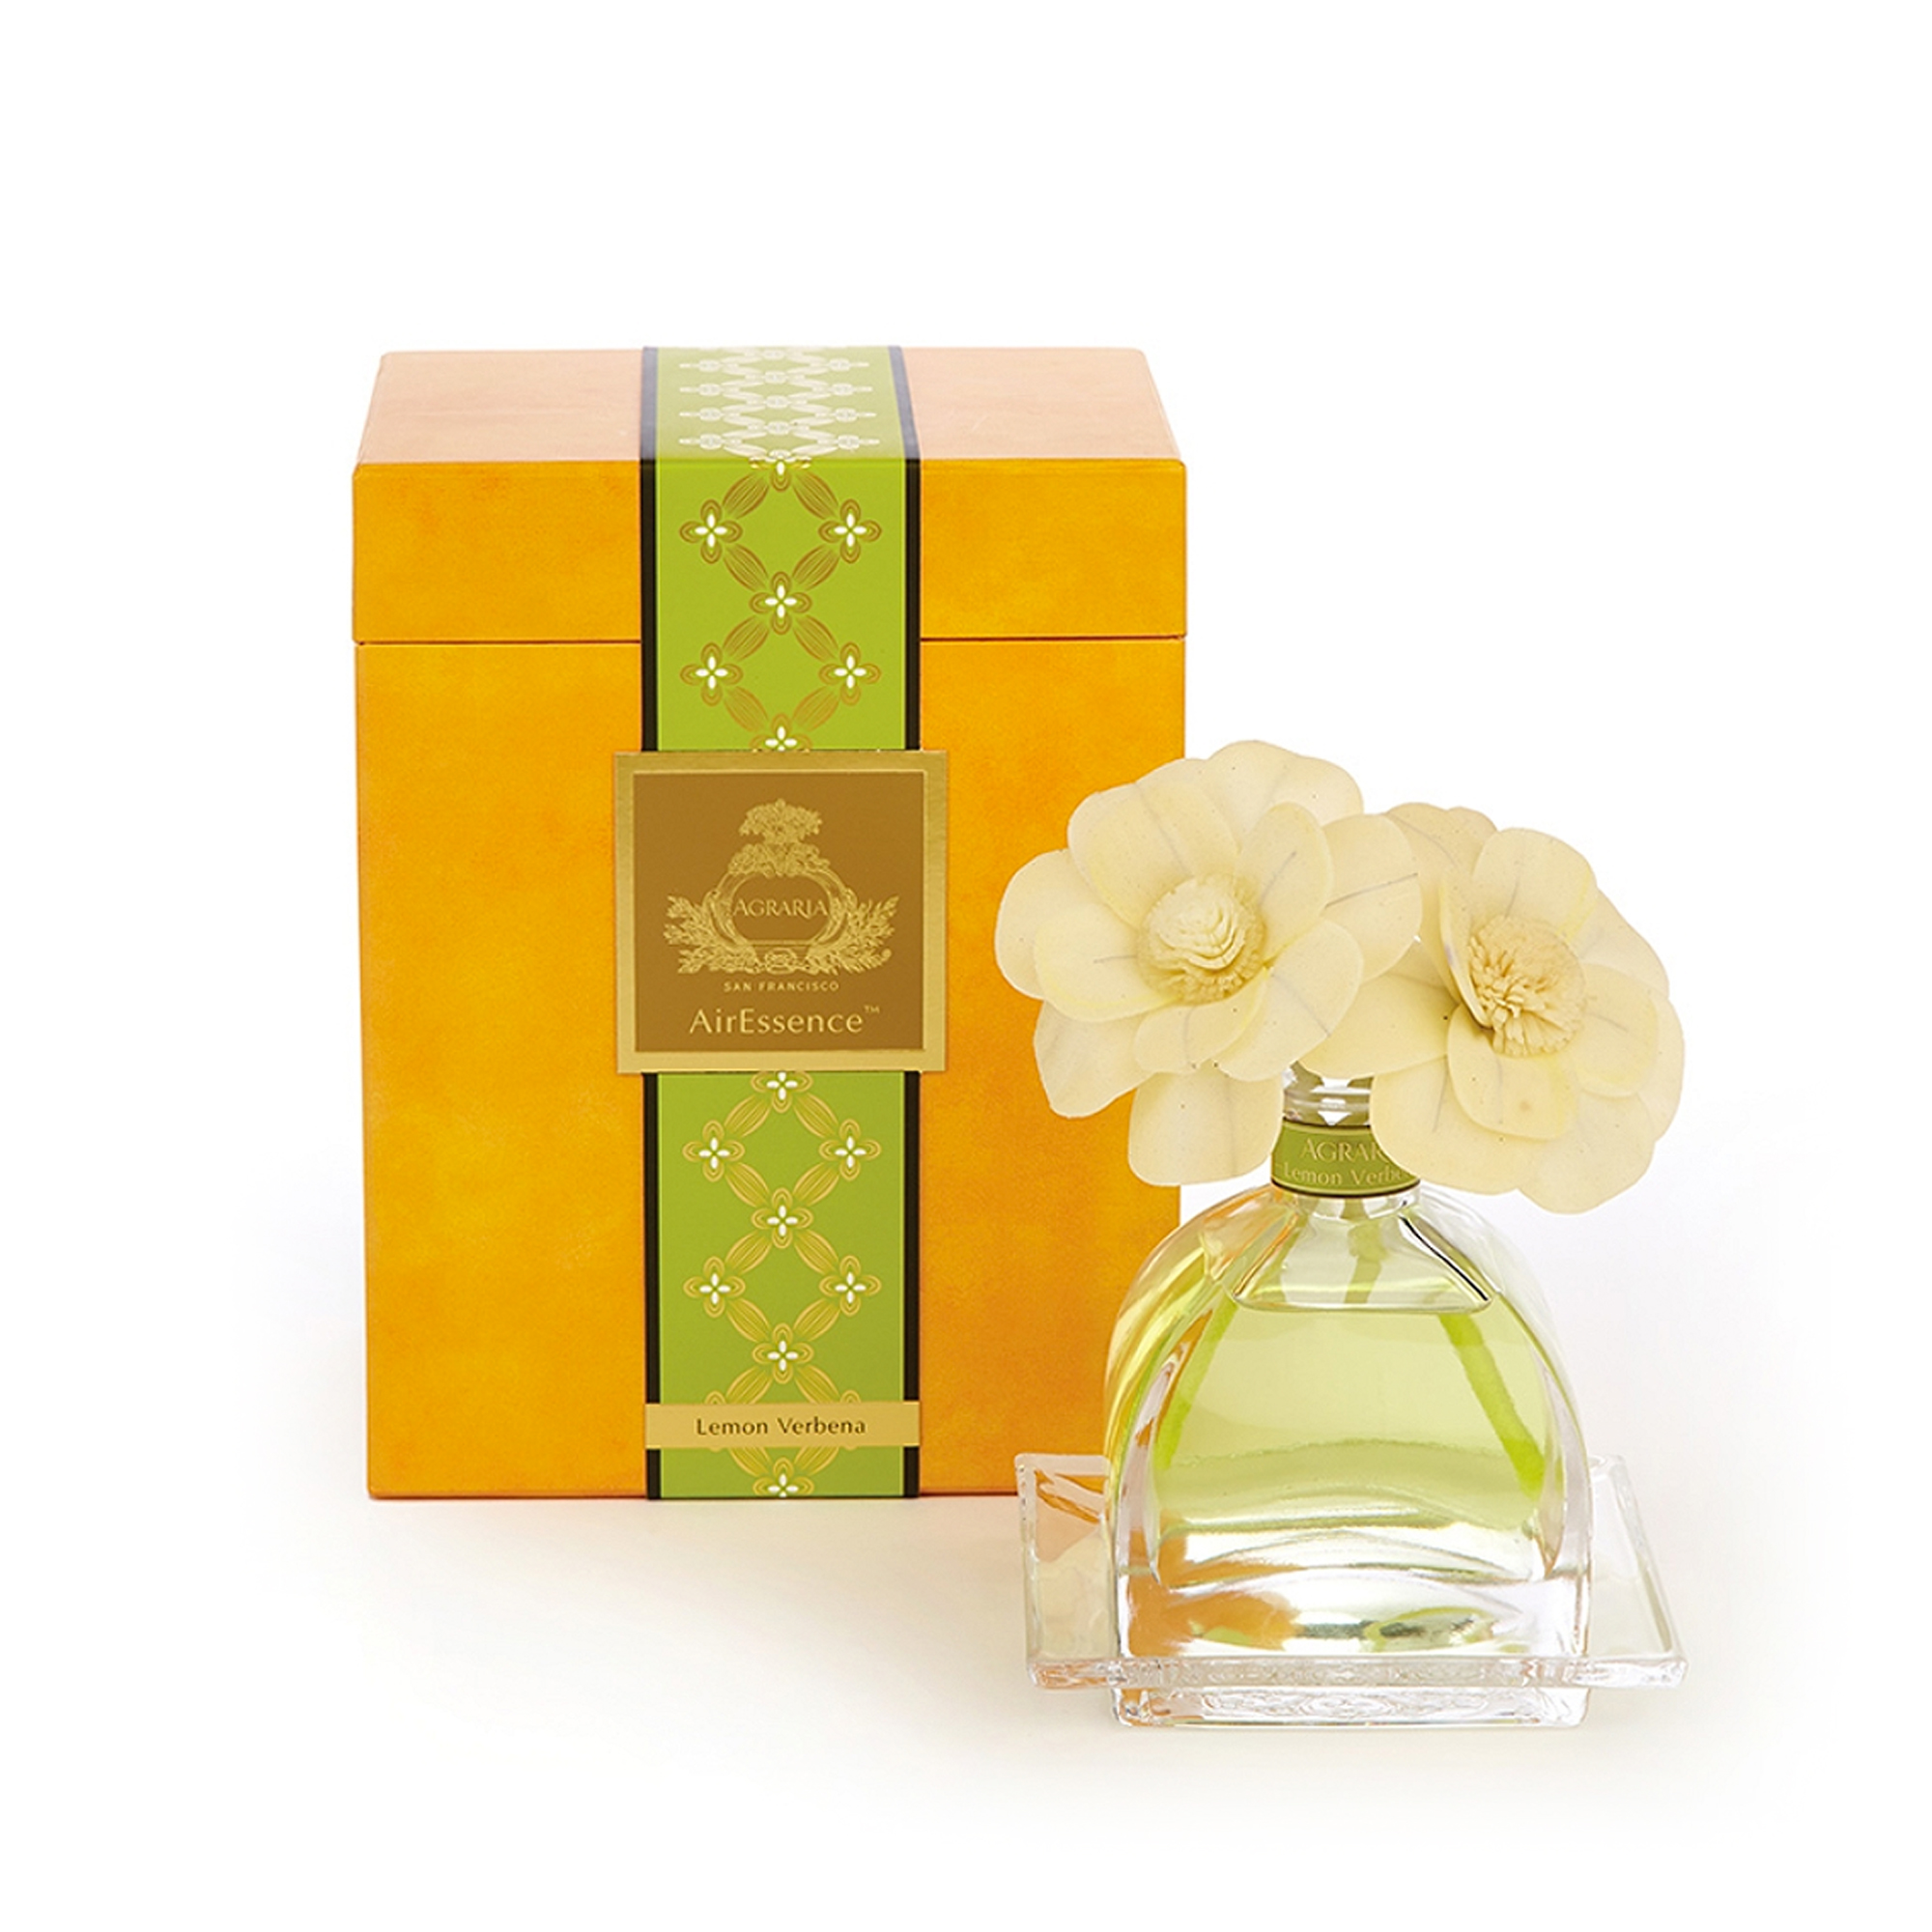 Lemon Verbena - Large Air Essence Home Fragrance